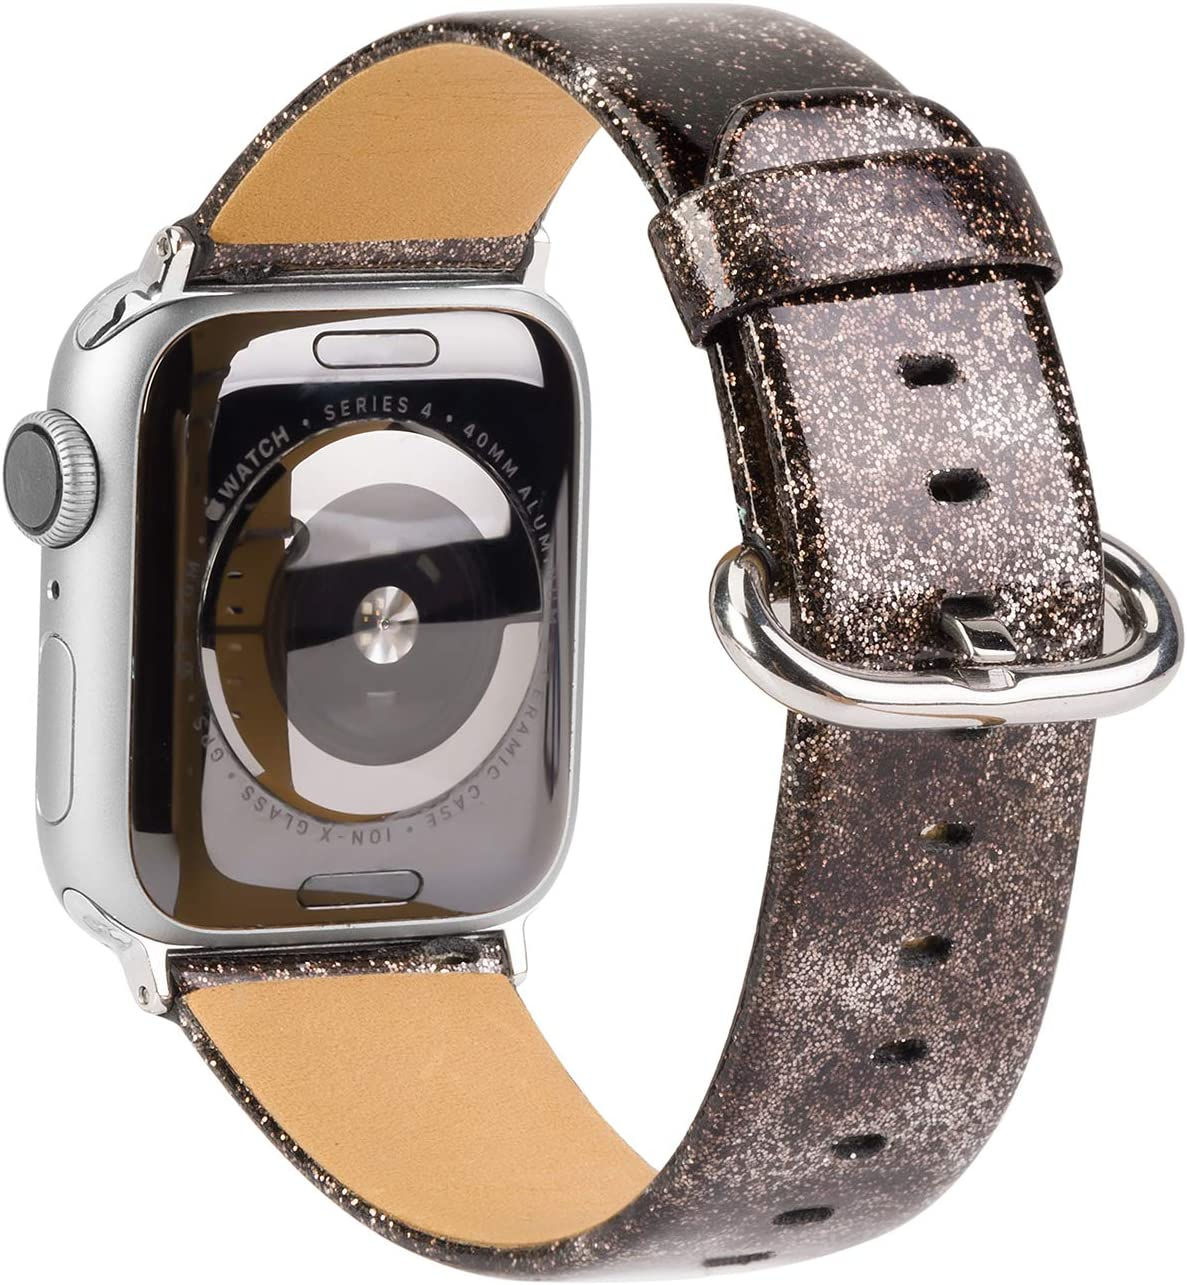 TOYOUTHS Glitter Leather Bands Compatible with Christmas Apple Watch Bands Rose Gold 38mm 40mm Womens Bling Diamond Dressy Genuine Shiny Strap for iWatch Series SE 6 5 4 3 2 1